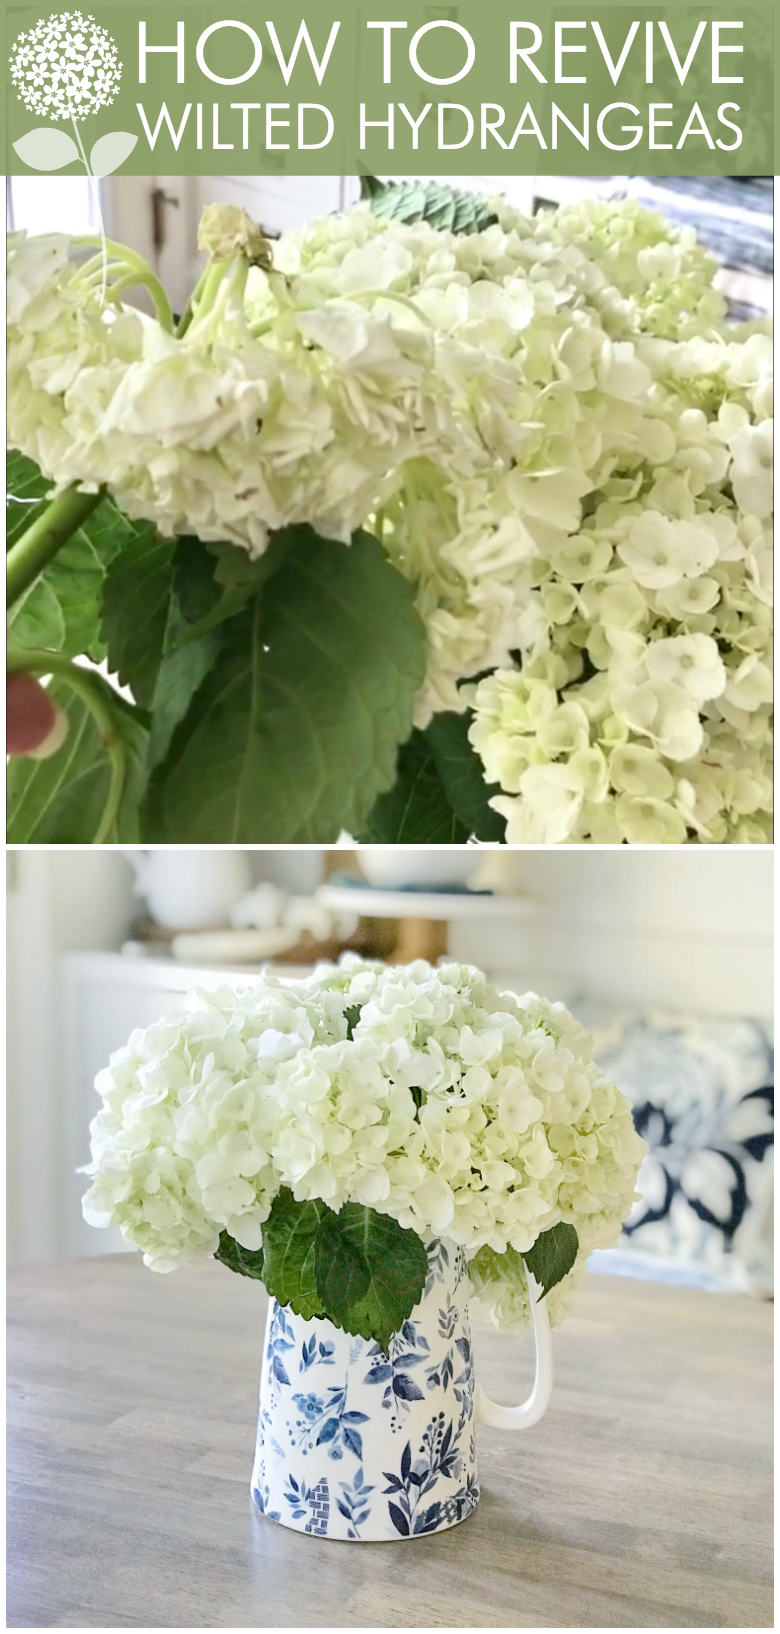 All About Hydrangeas - Tips to Reviving Wilted Hydrangeas by Home Stories A to Z